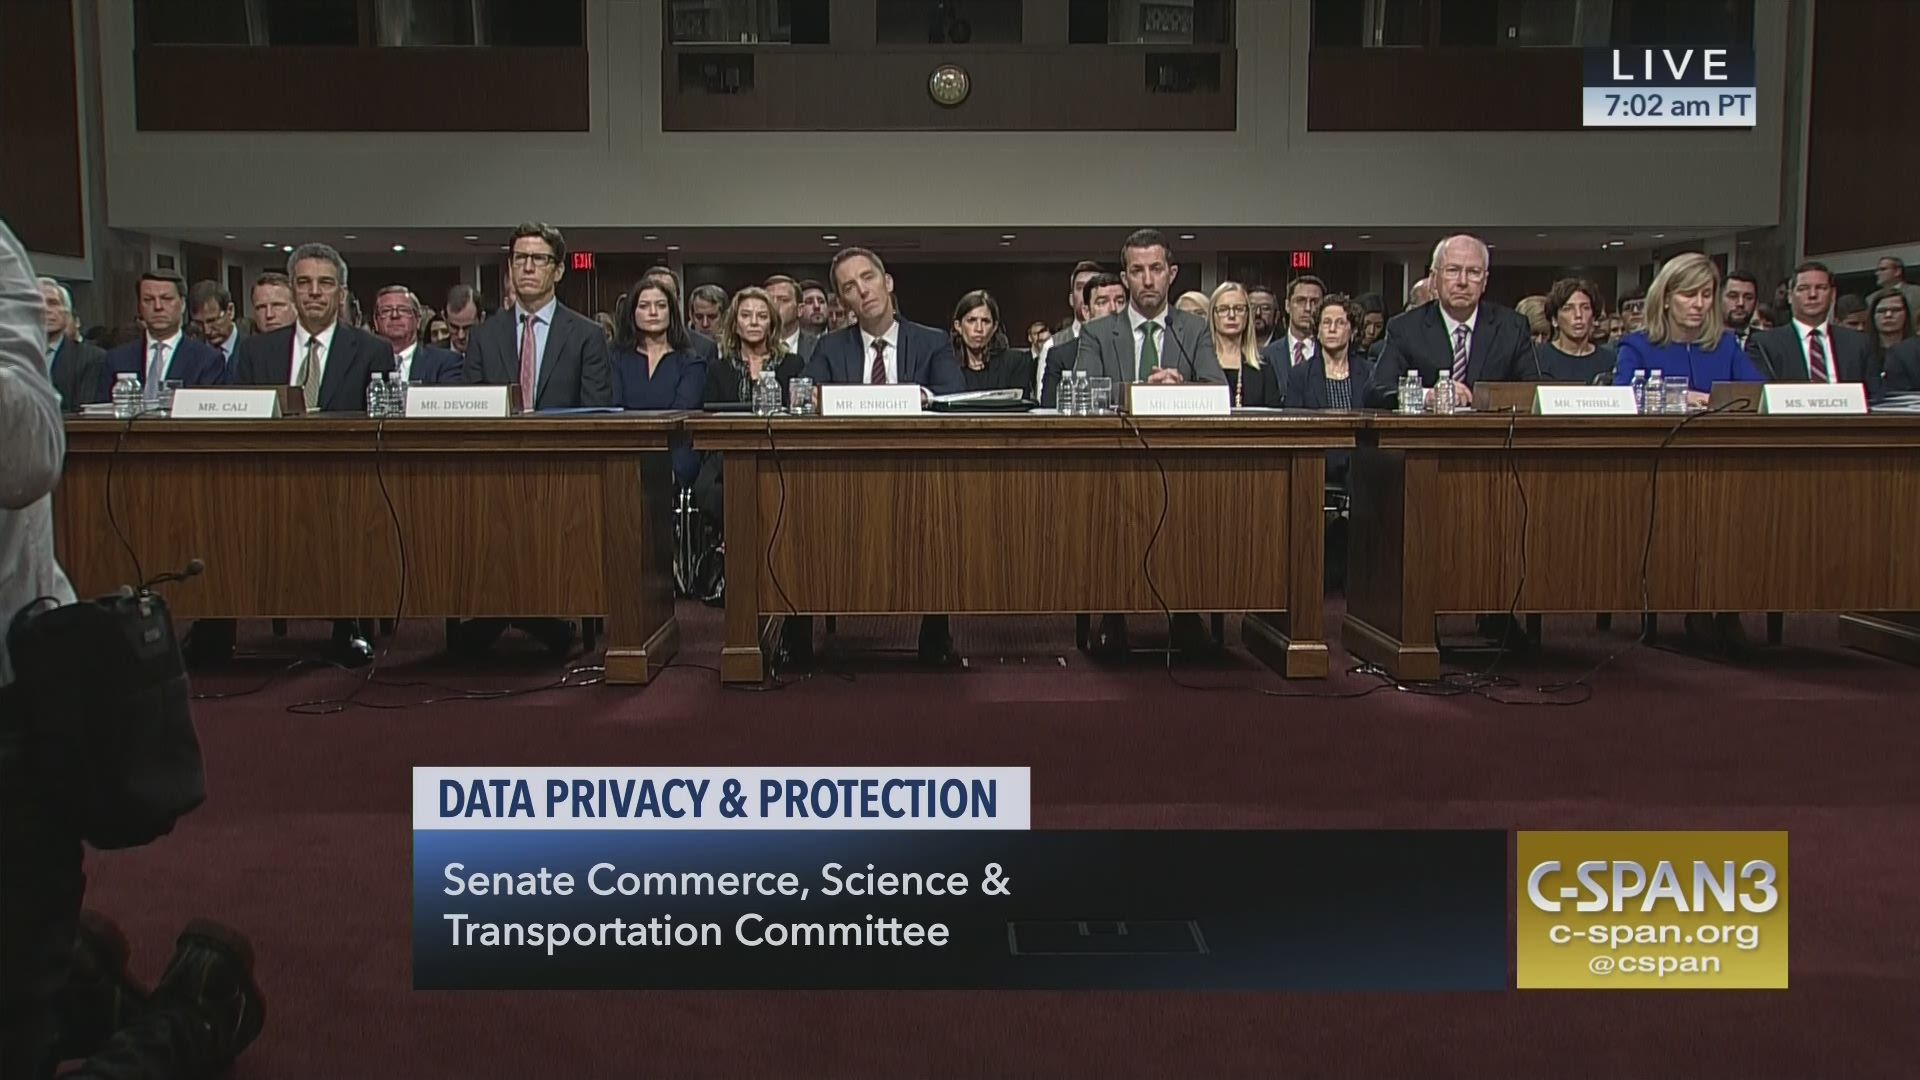 Attention Senators Questions 14 >> Data Privacy And Protection C Span Org